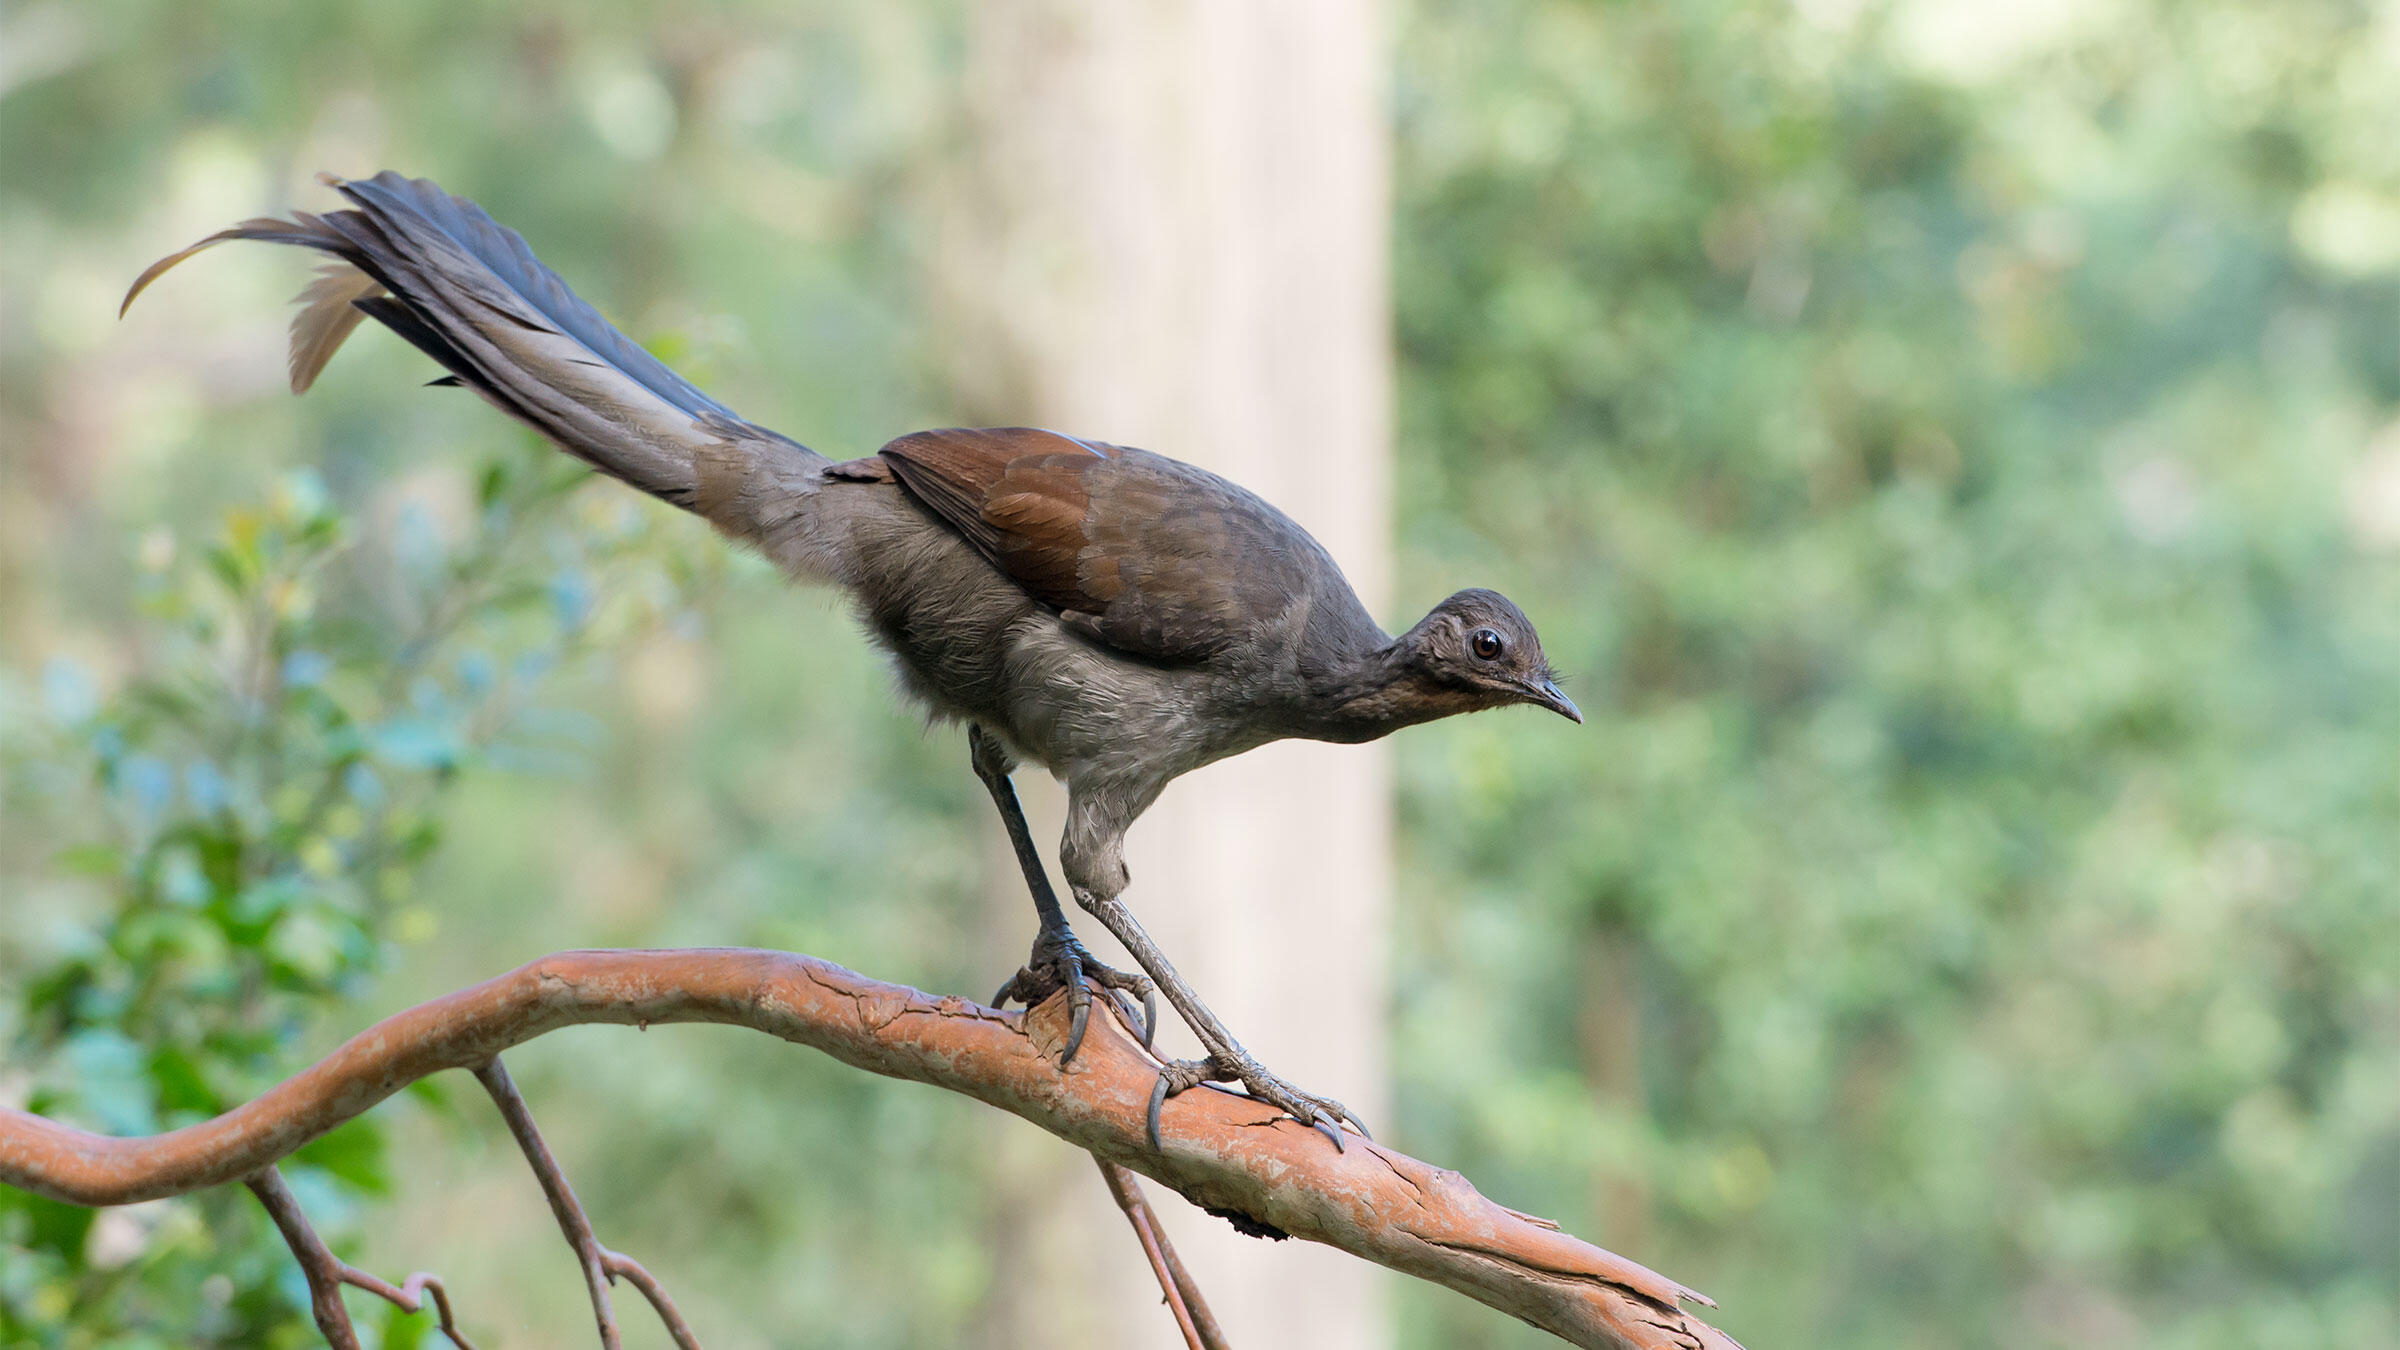 Lacking the dazzling display of the male, the Superb Lyrebird lady has many talents of her own. Justin Welbergen